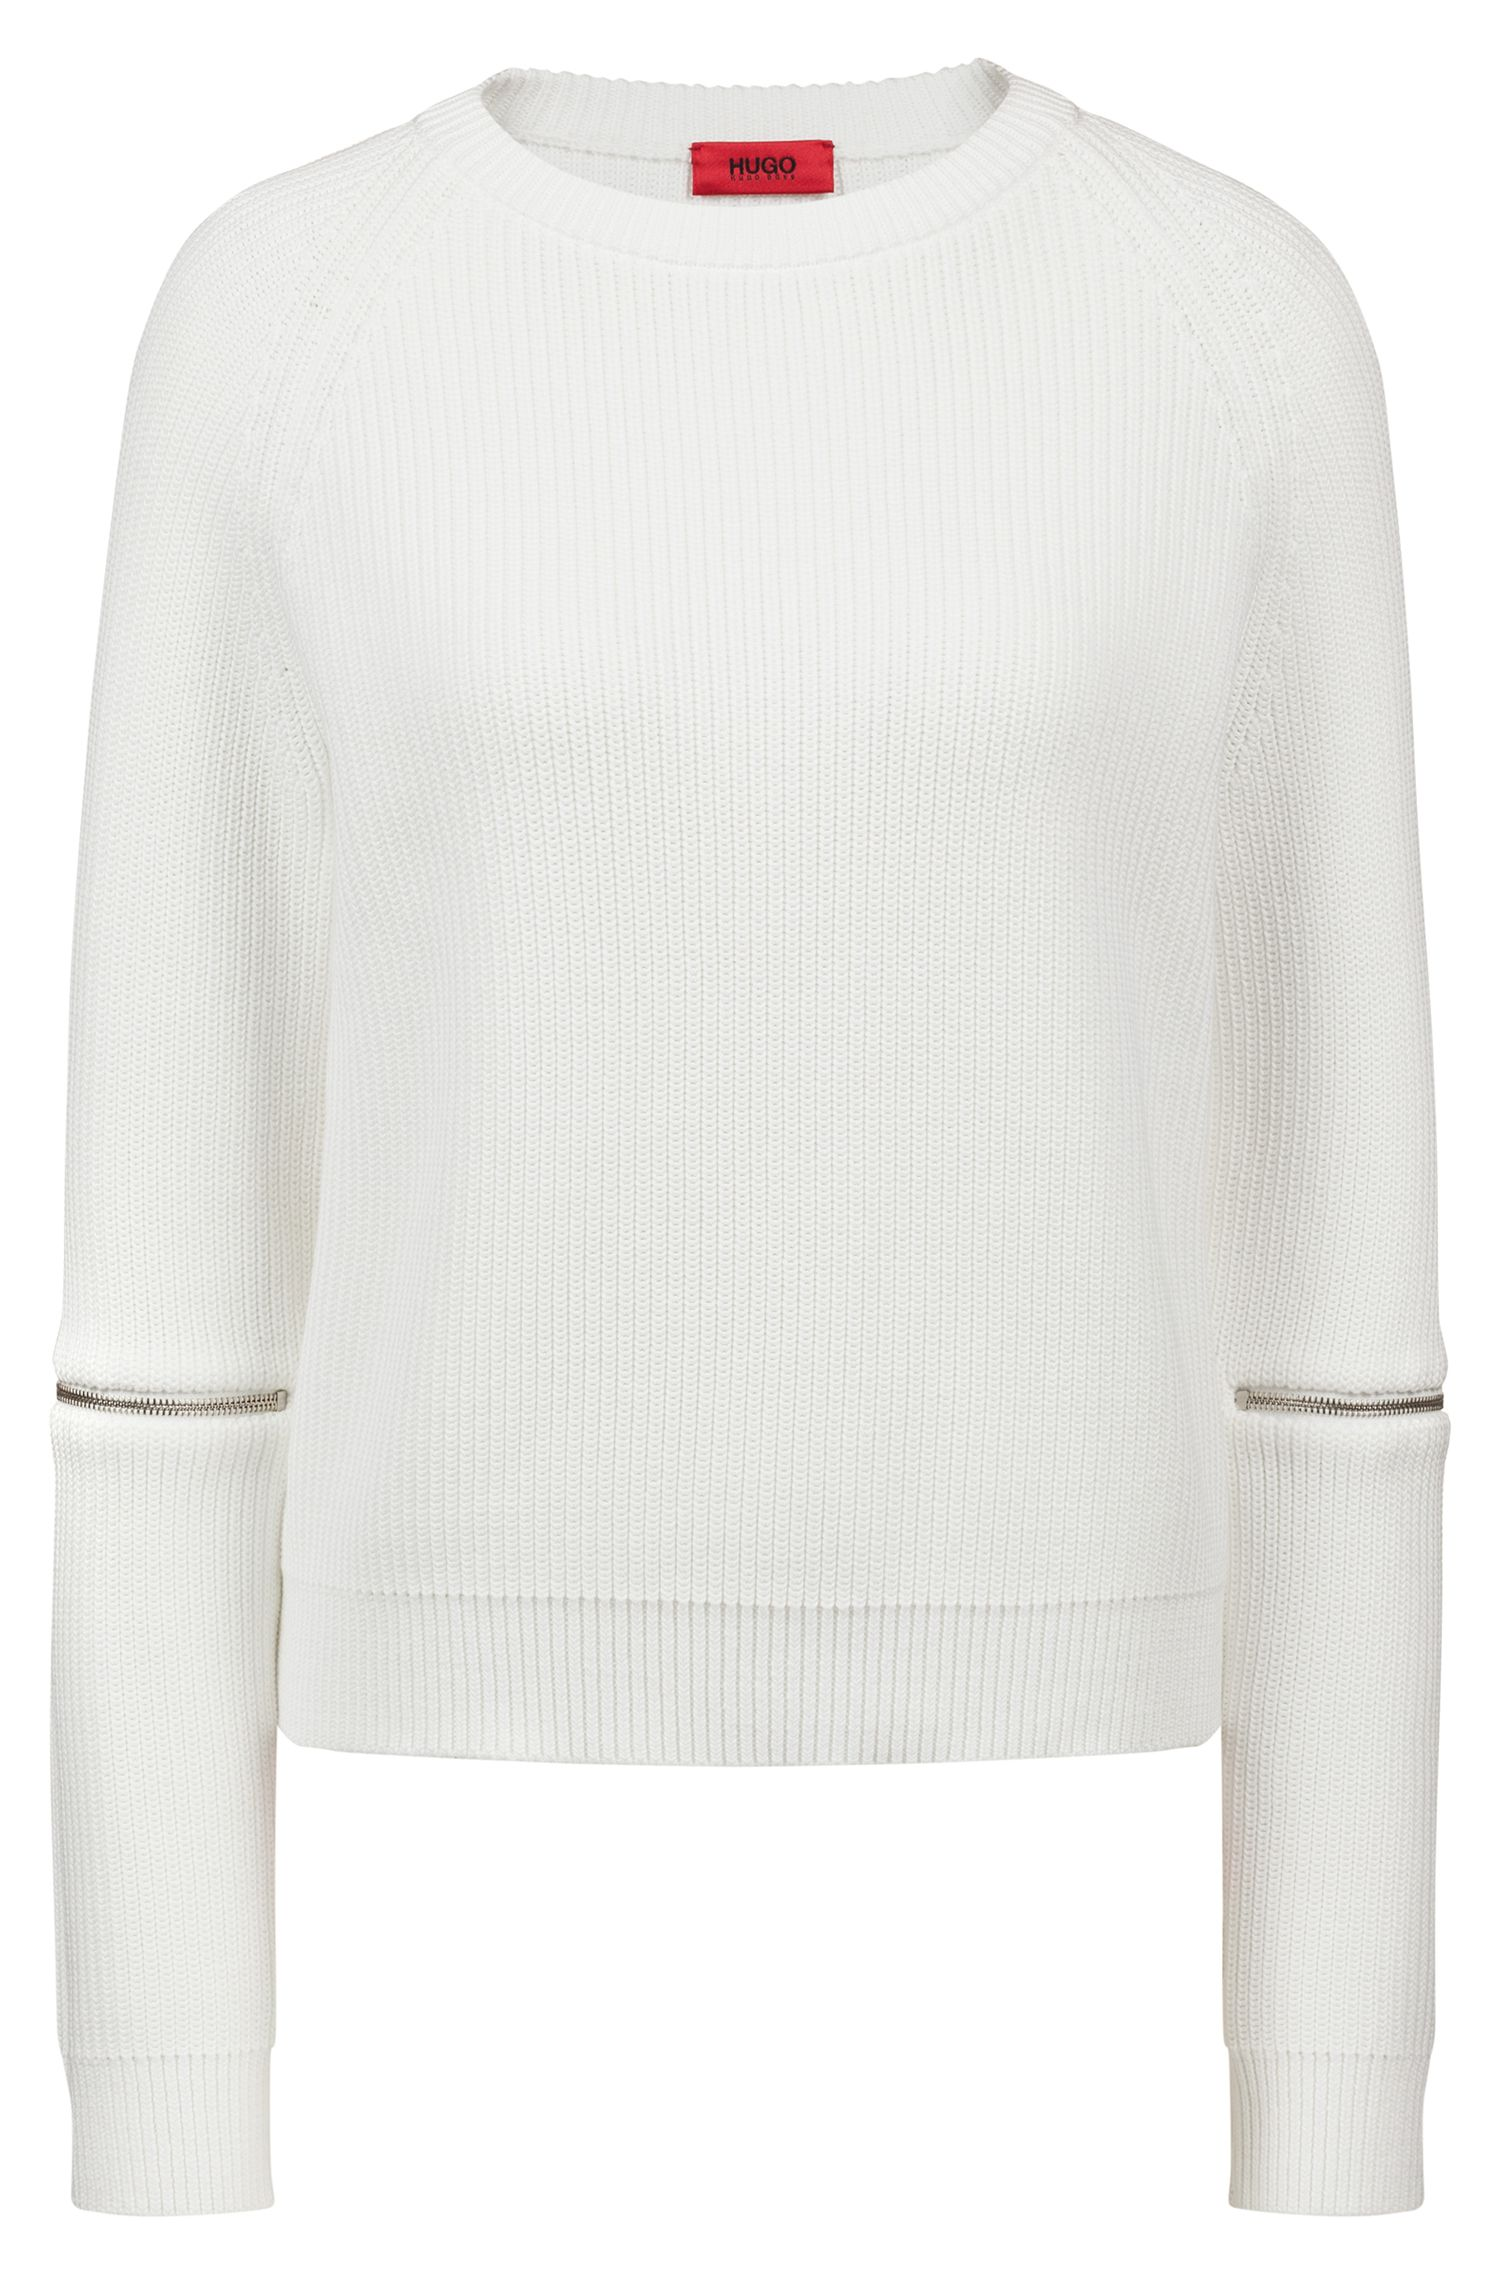 Cotton crew-neck sweater with zip detail, Natural